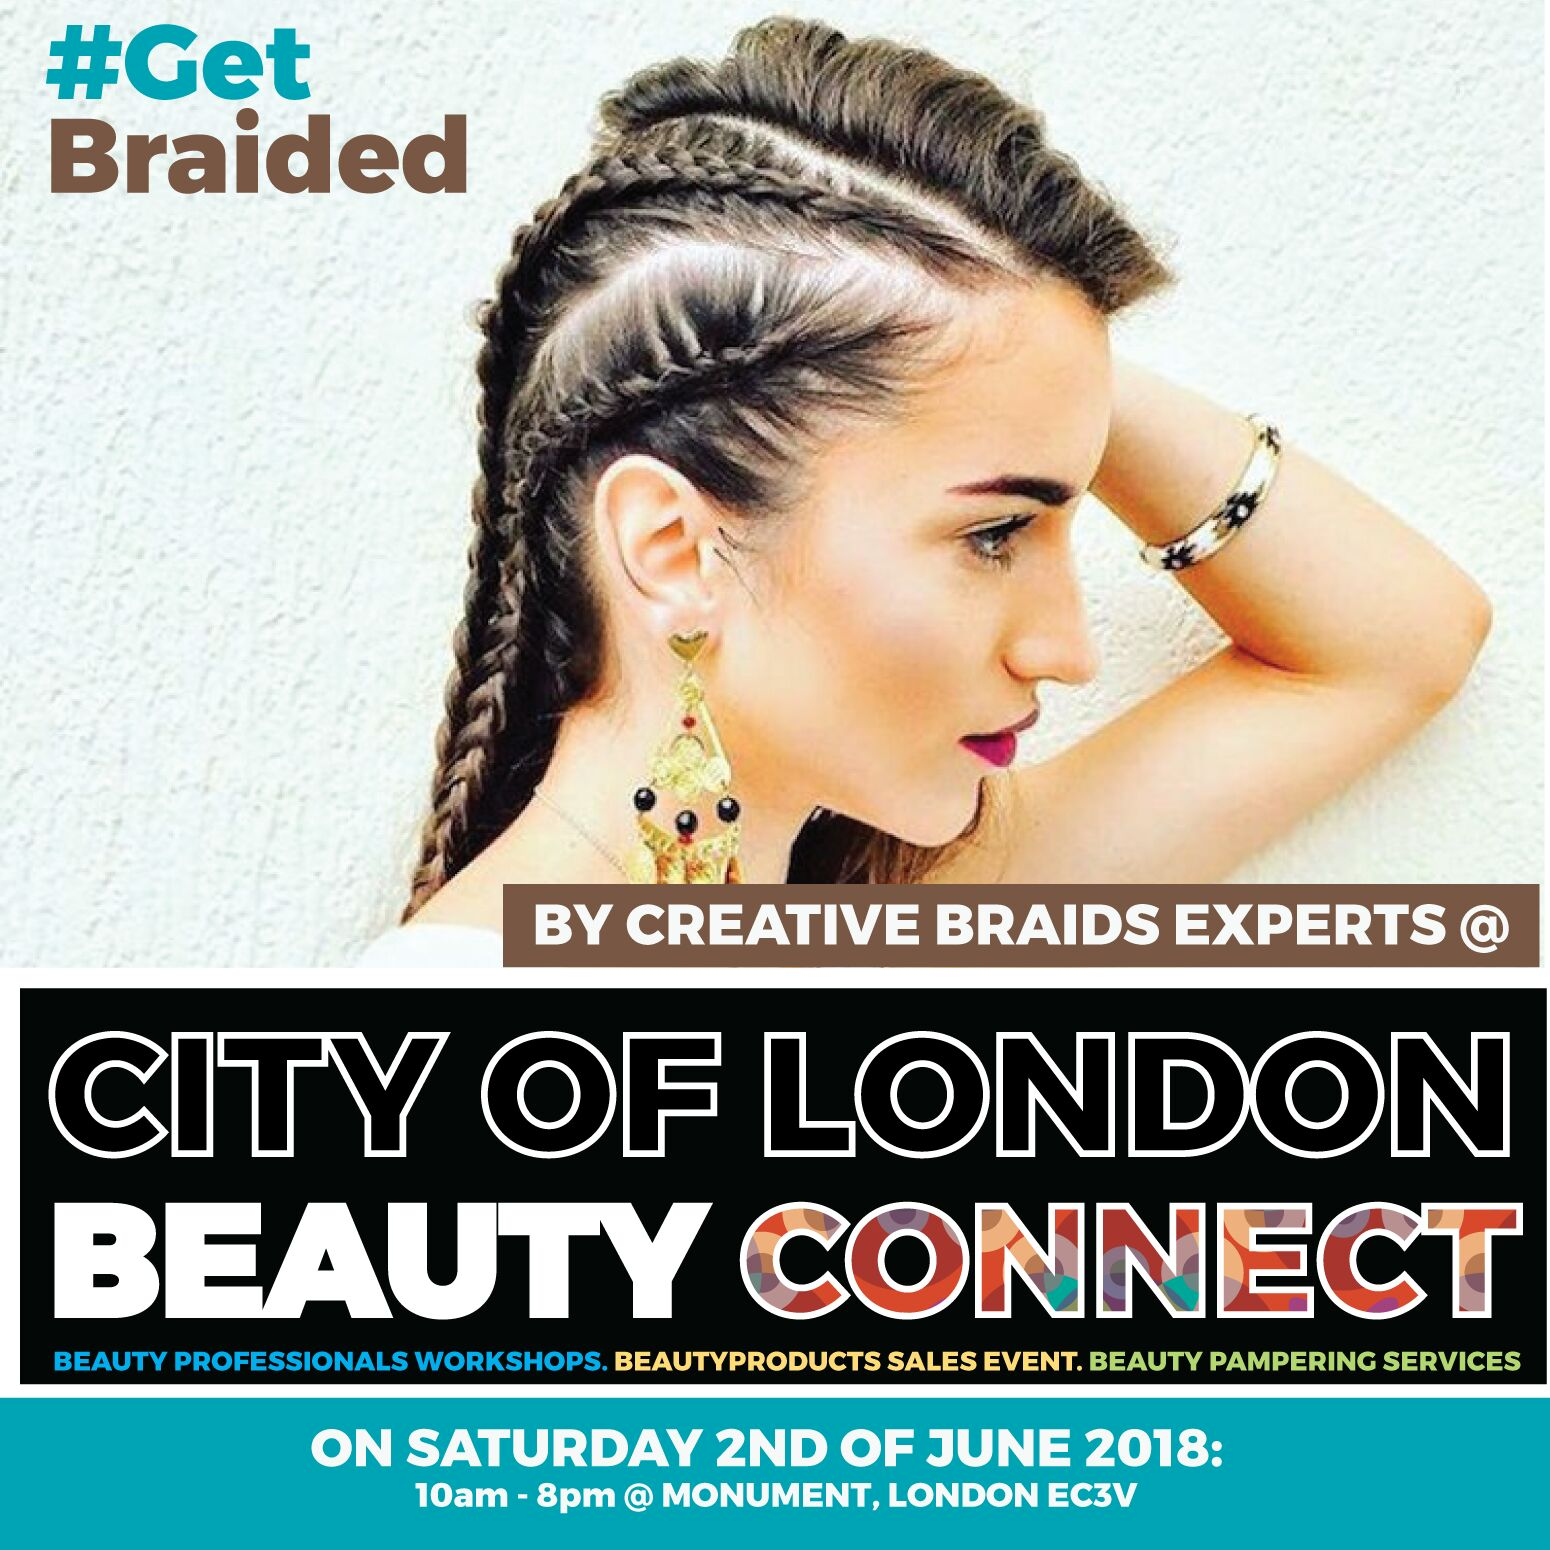 Be braided By Beauty Experts @ Monument City of London